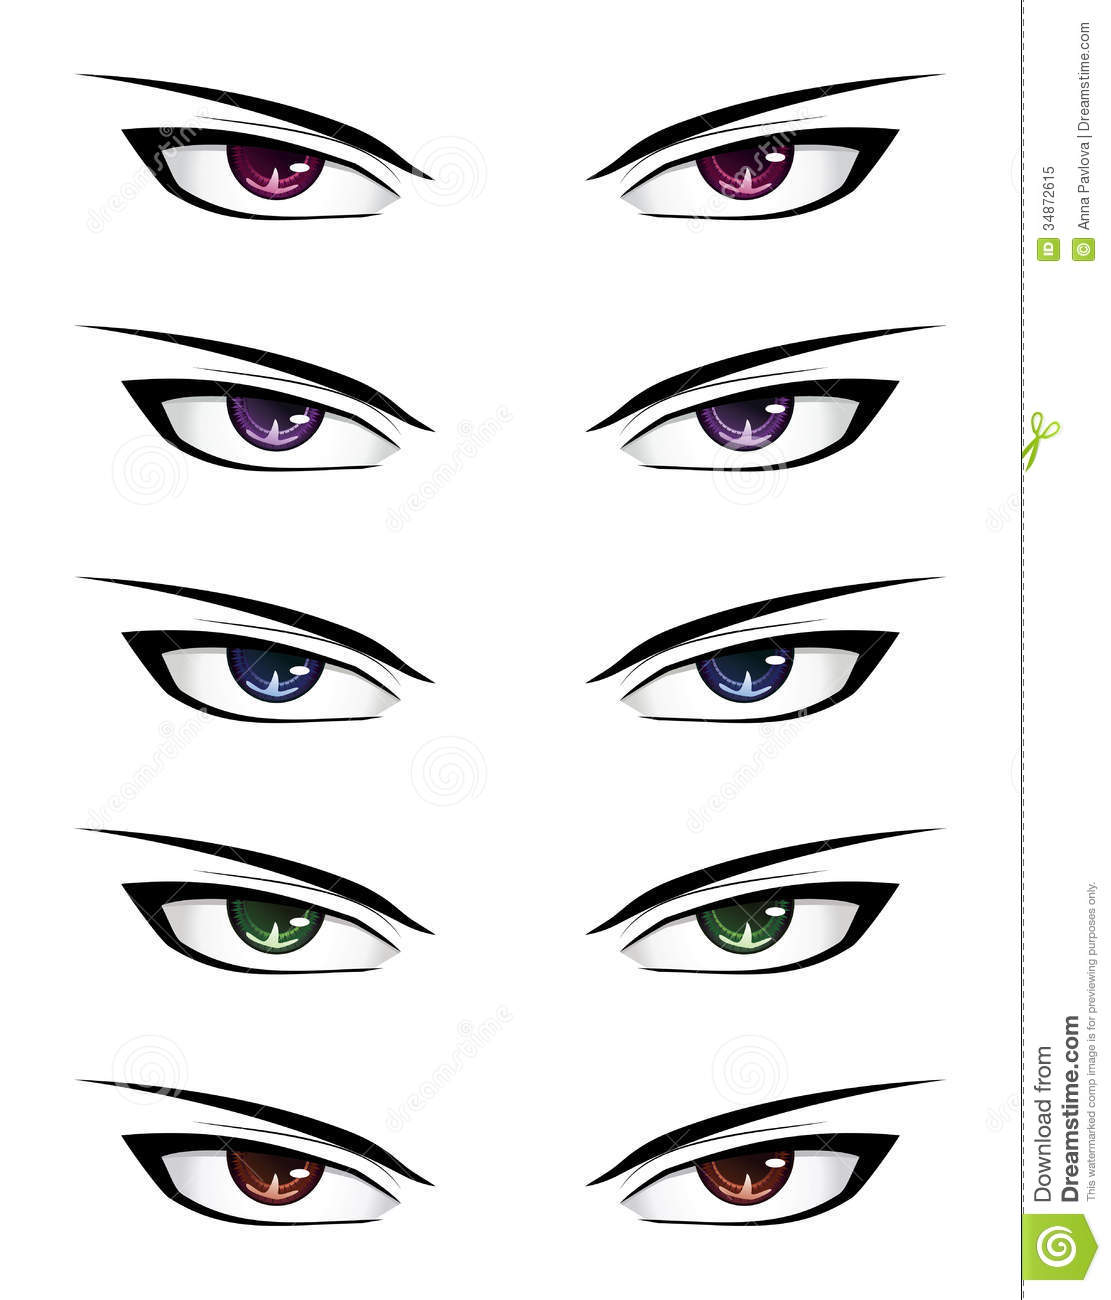 Anime Male Eyes Stock Vector Illustration Of Cartoon